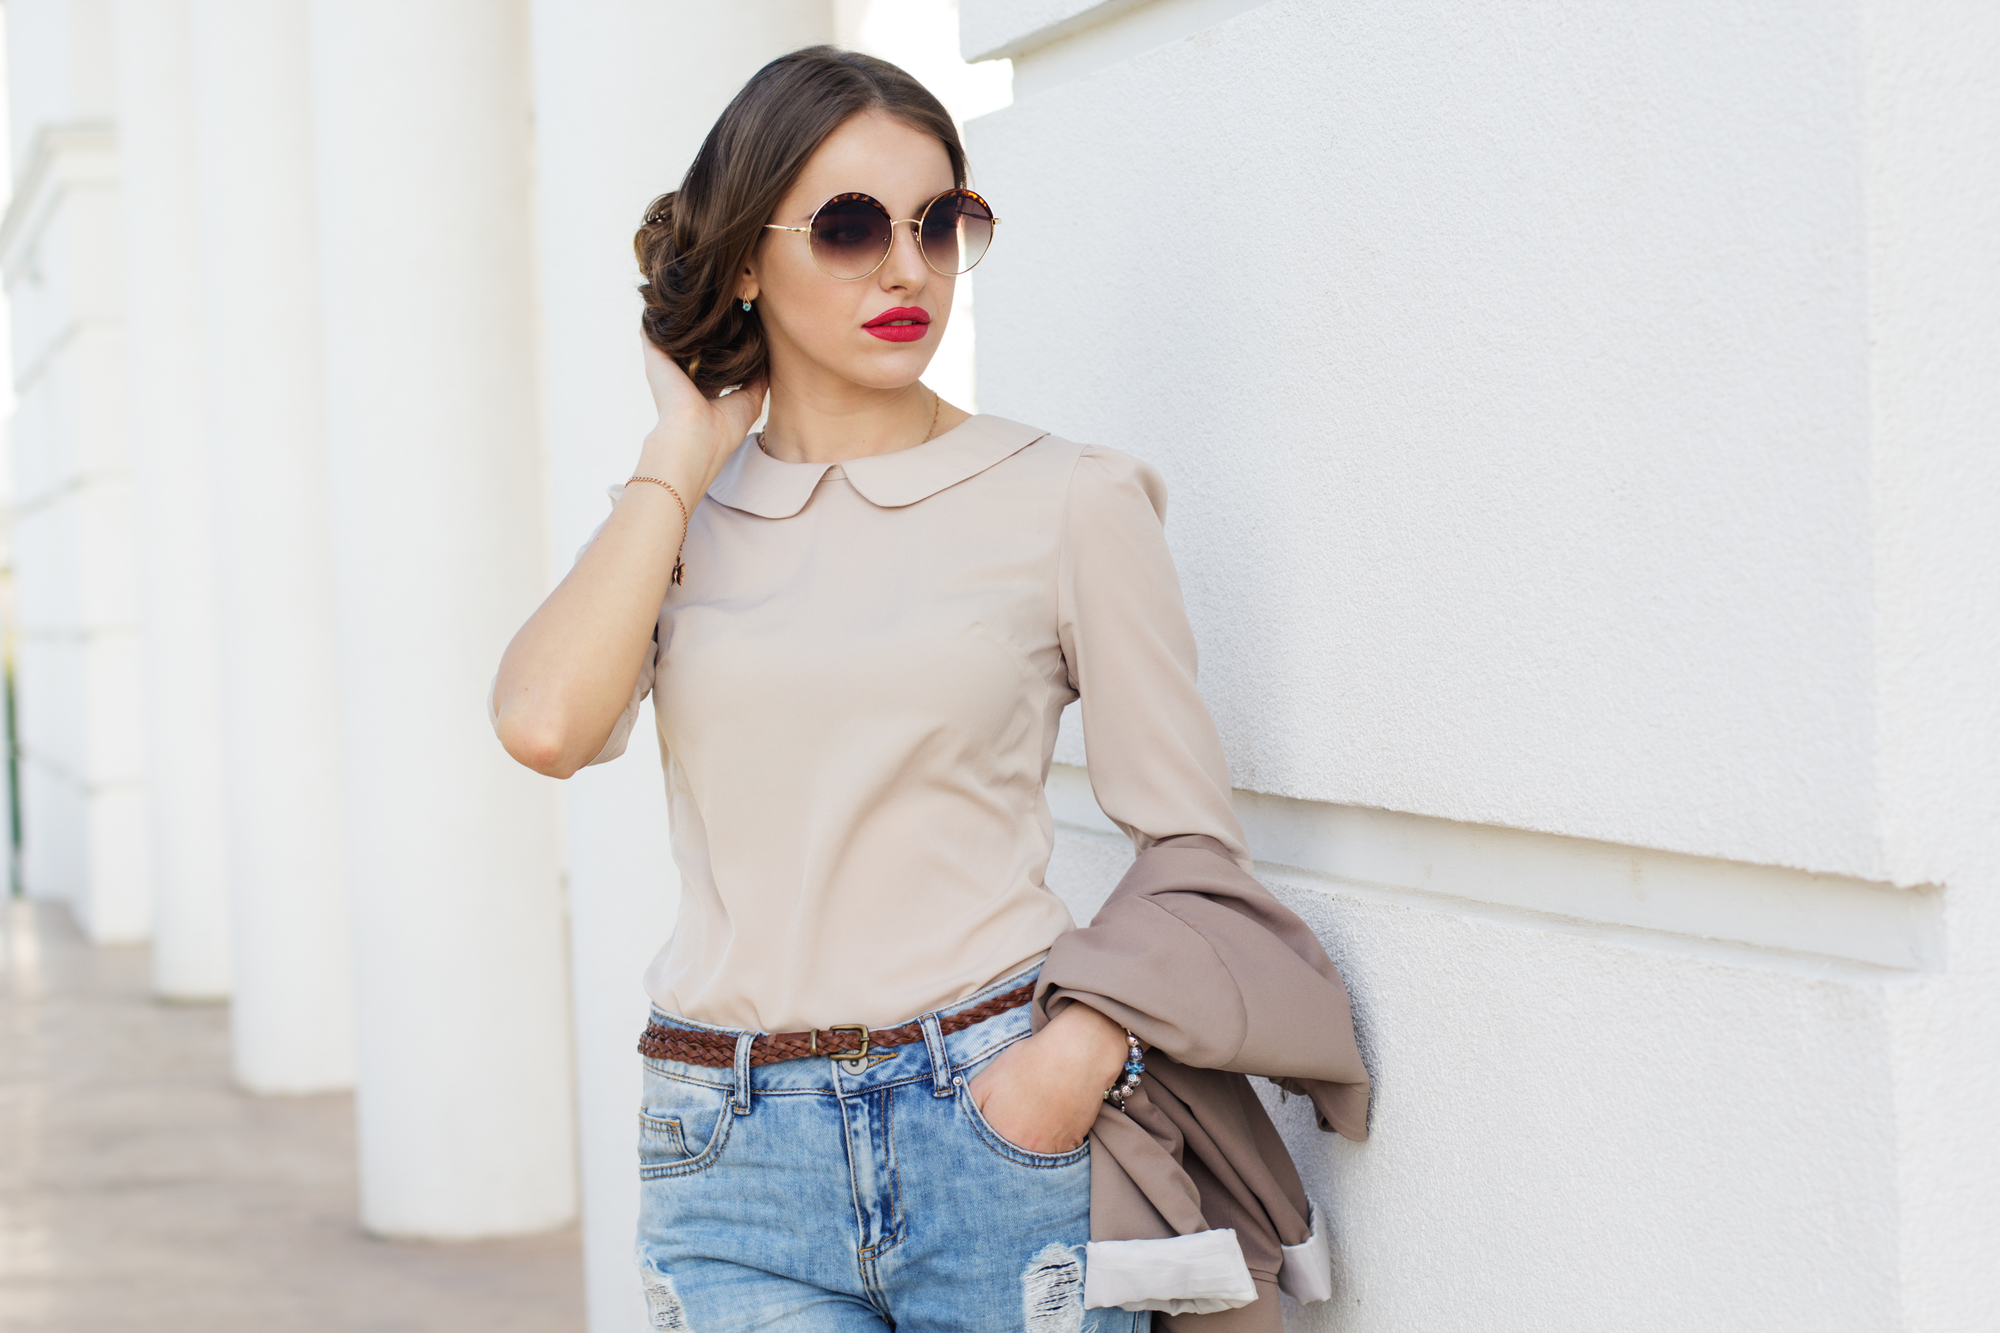 Beautiful business lady is wearing sunglasses and holding jacket infront of white wall